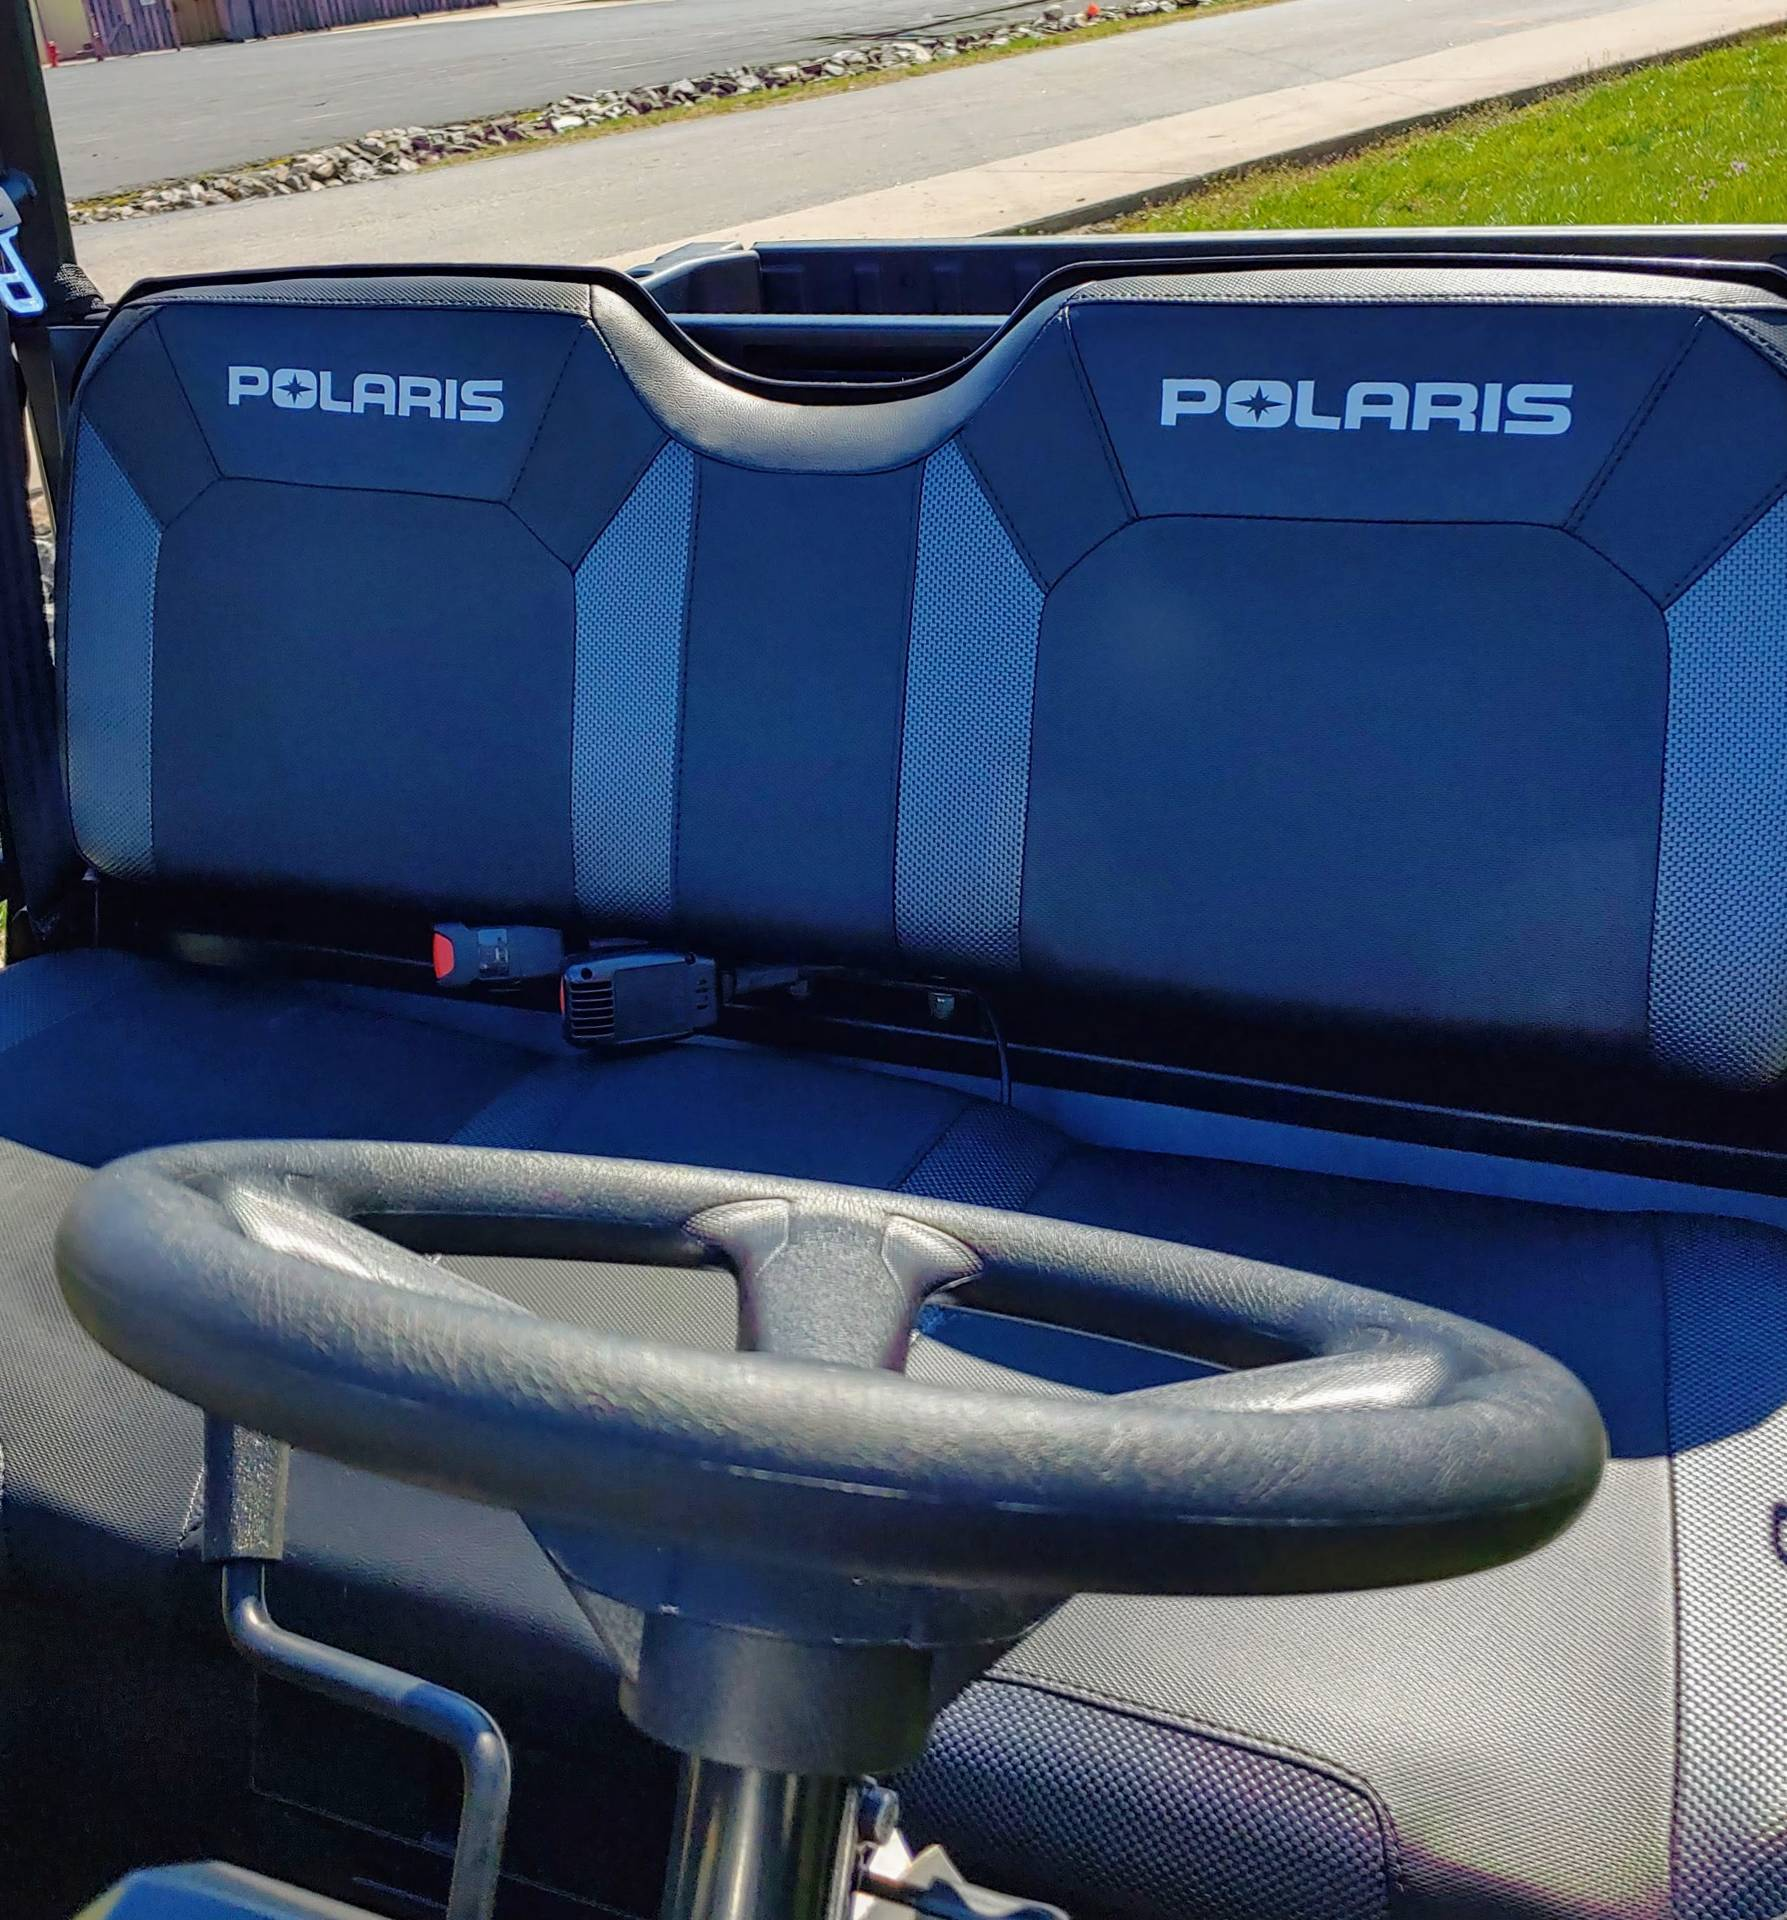 2019 Polaris Ranger 570 EPS in Statesville, North Carolina - Photo 9